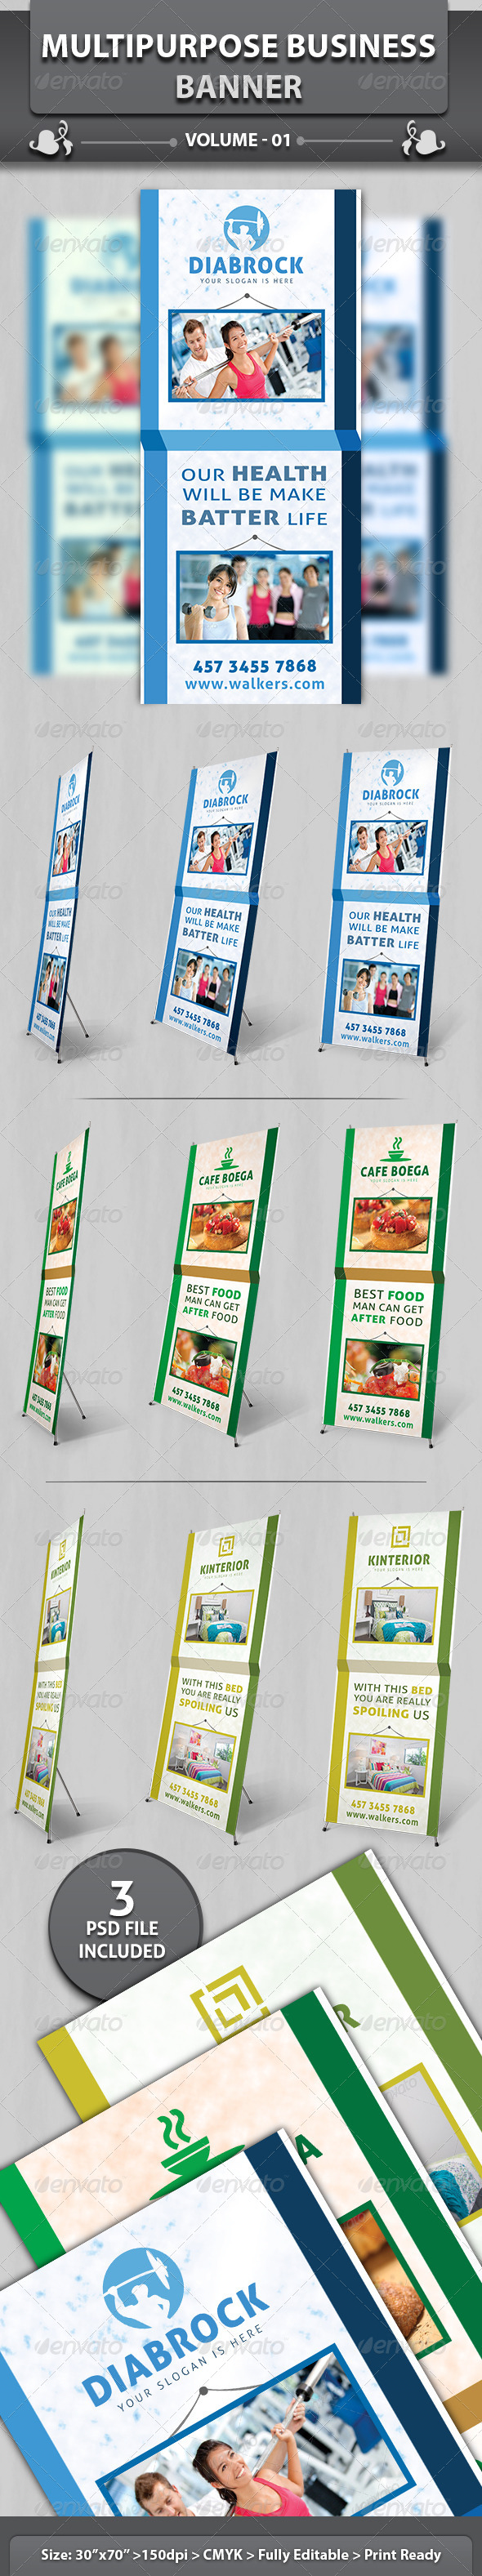 Multipurpose Business Banner | Volume 1 - Signage Print Templates